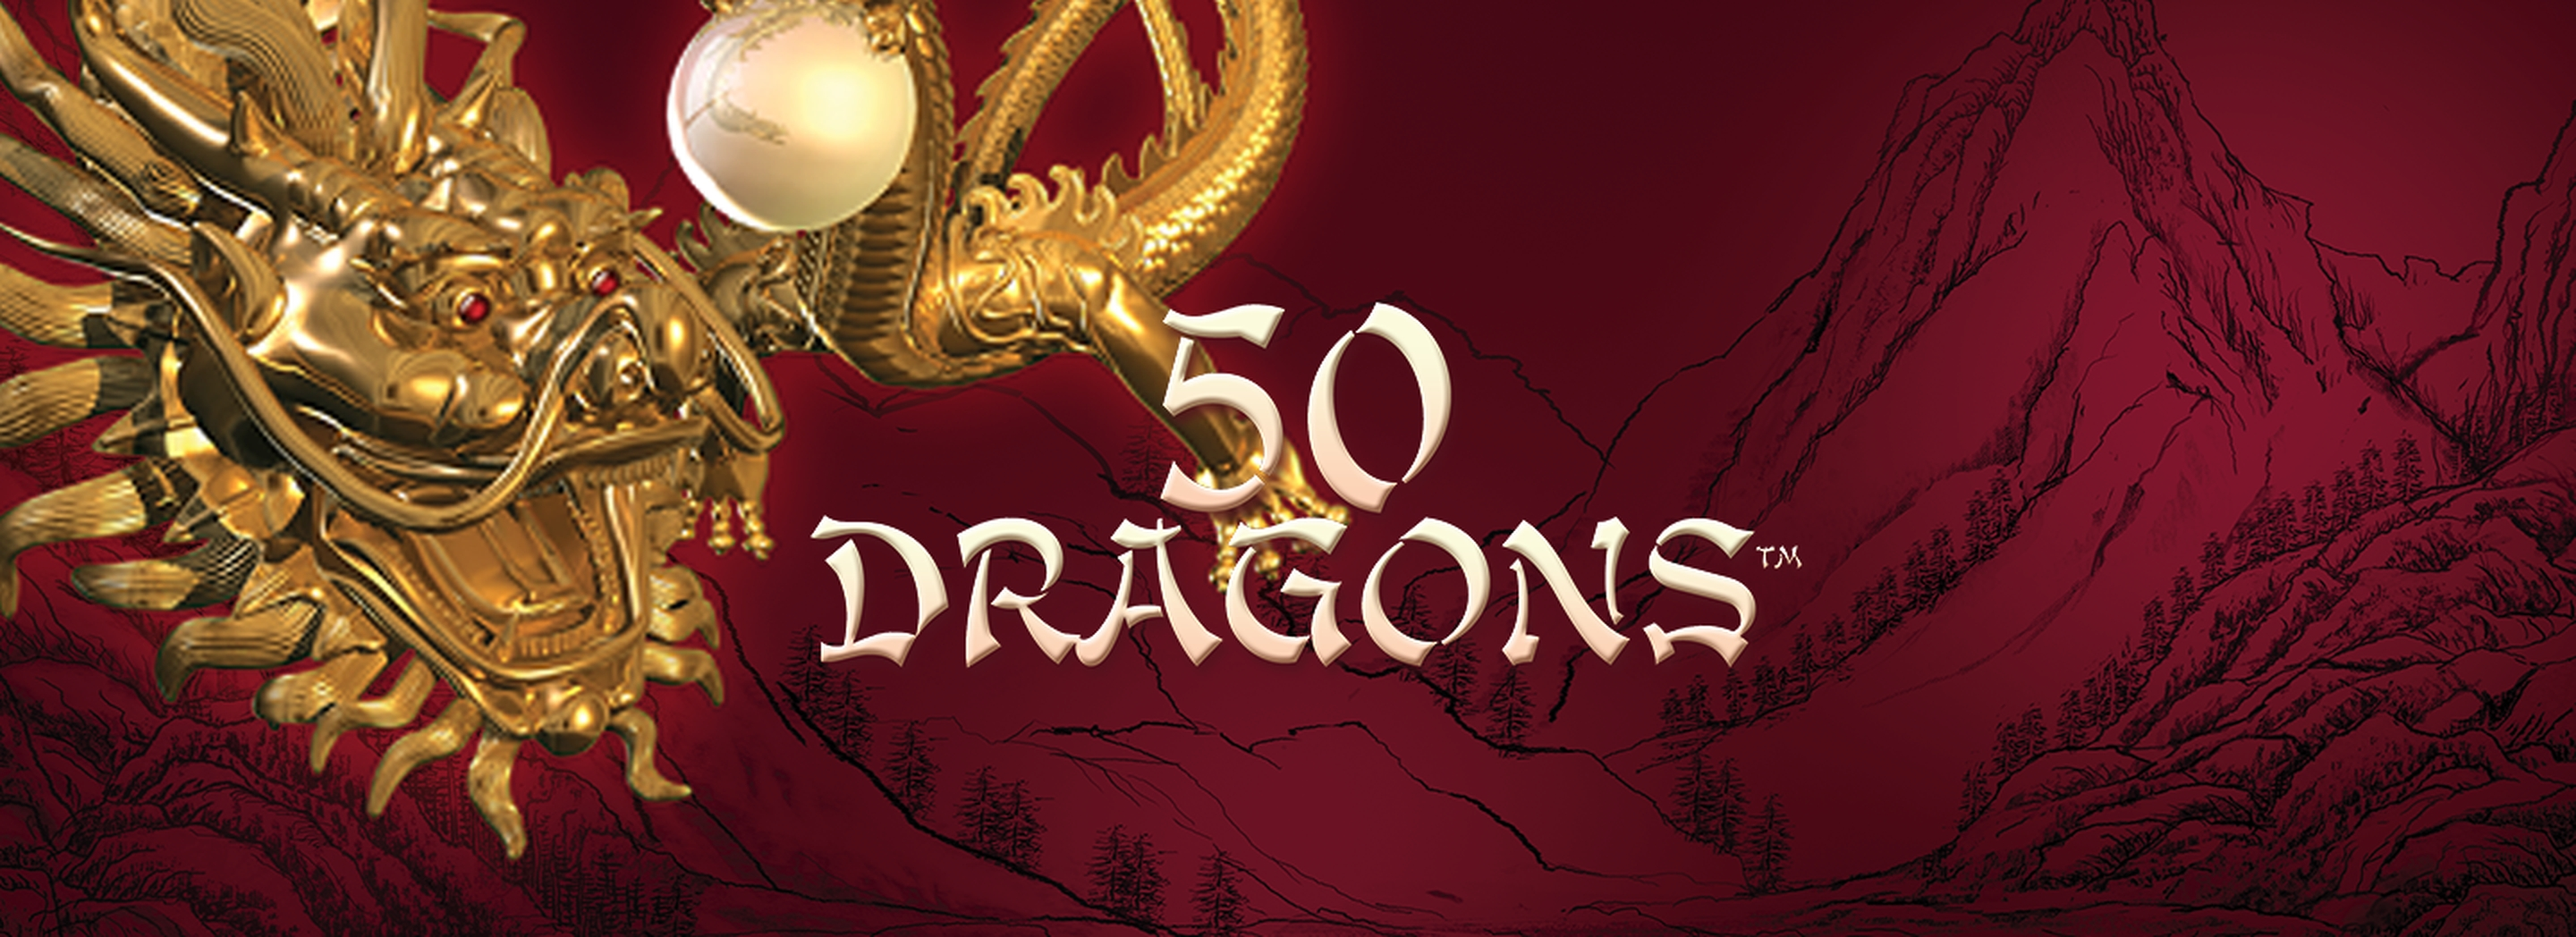 The 50 Dragons Online Slot Demo Game by Aristocrat